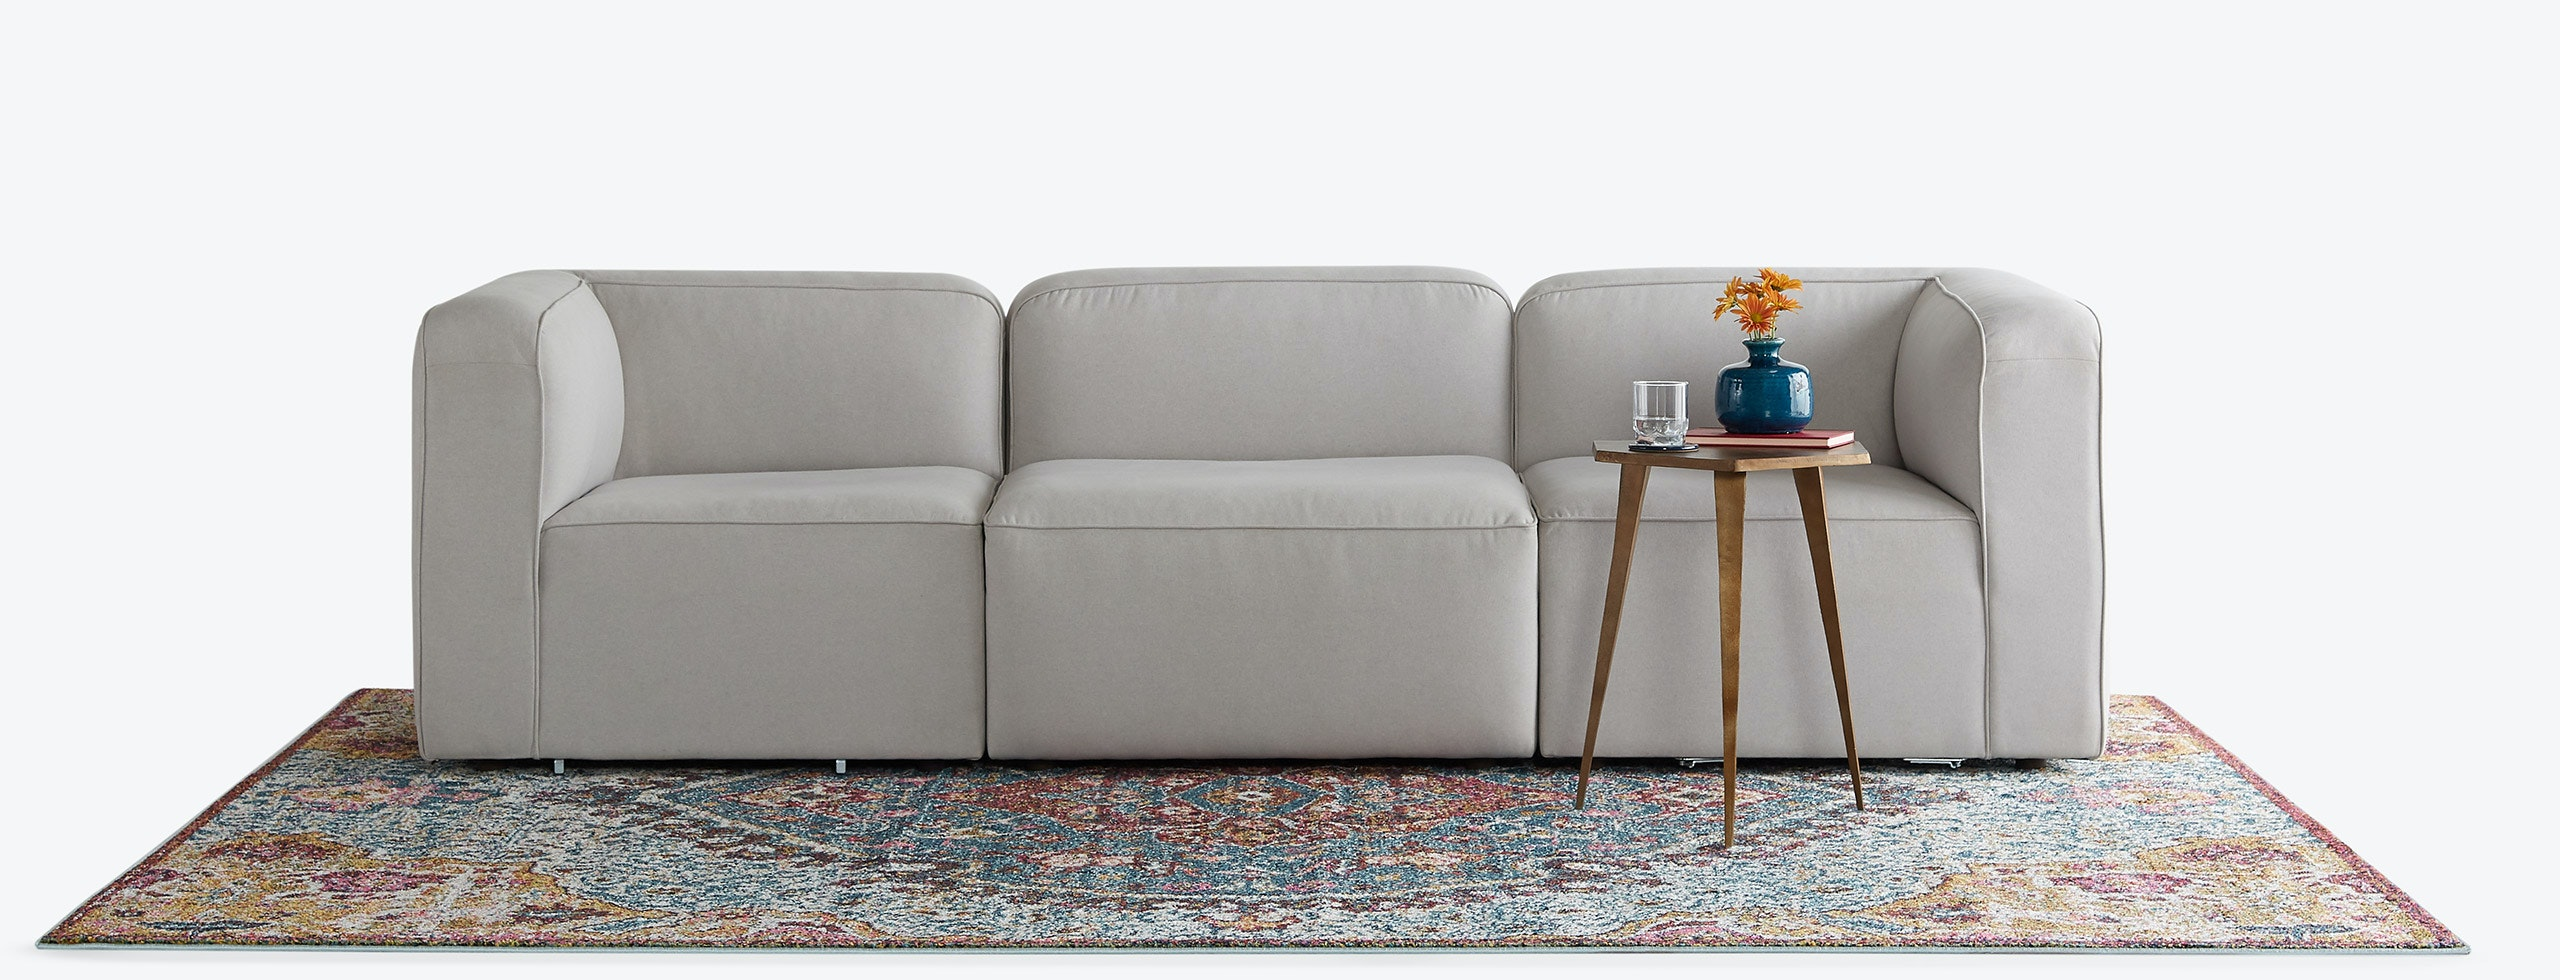 Cheap Modular Lounges Logan Modular Sofa